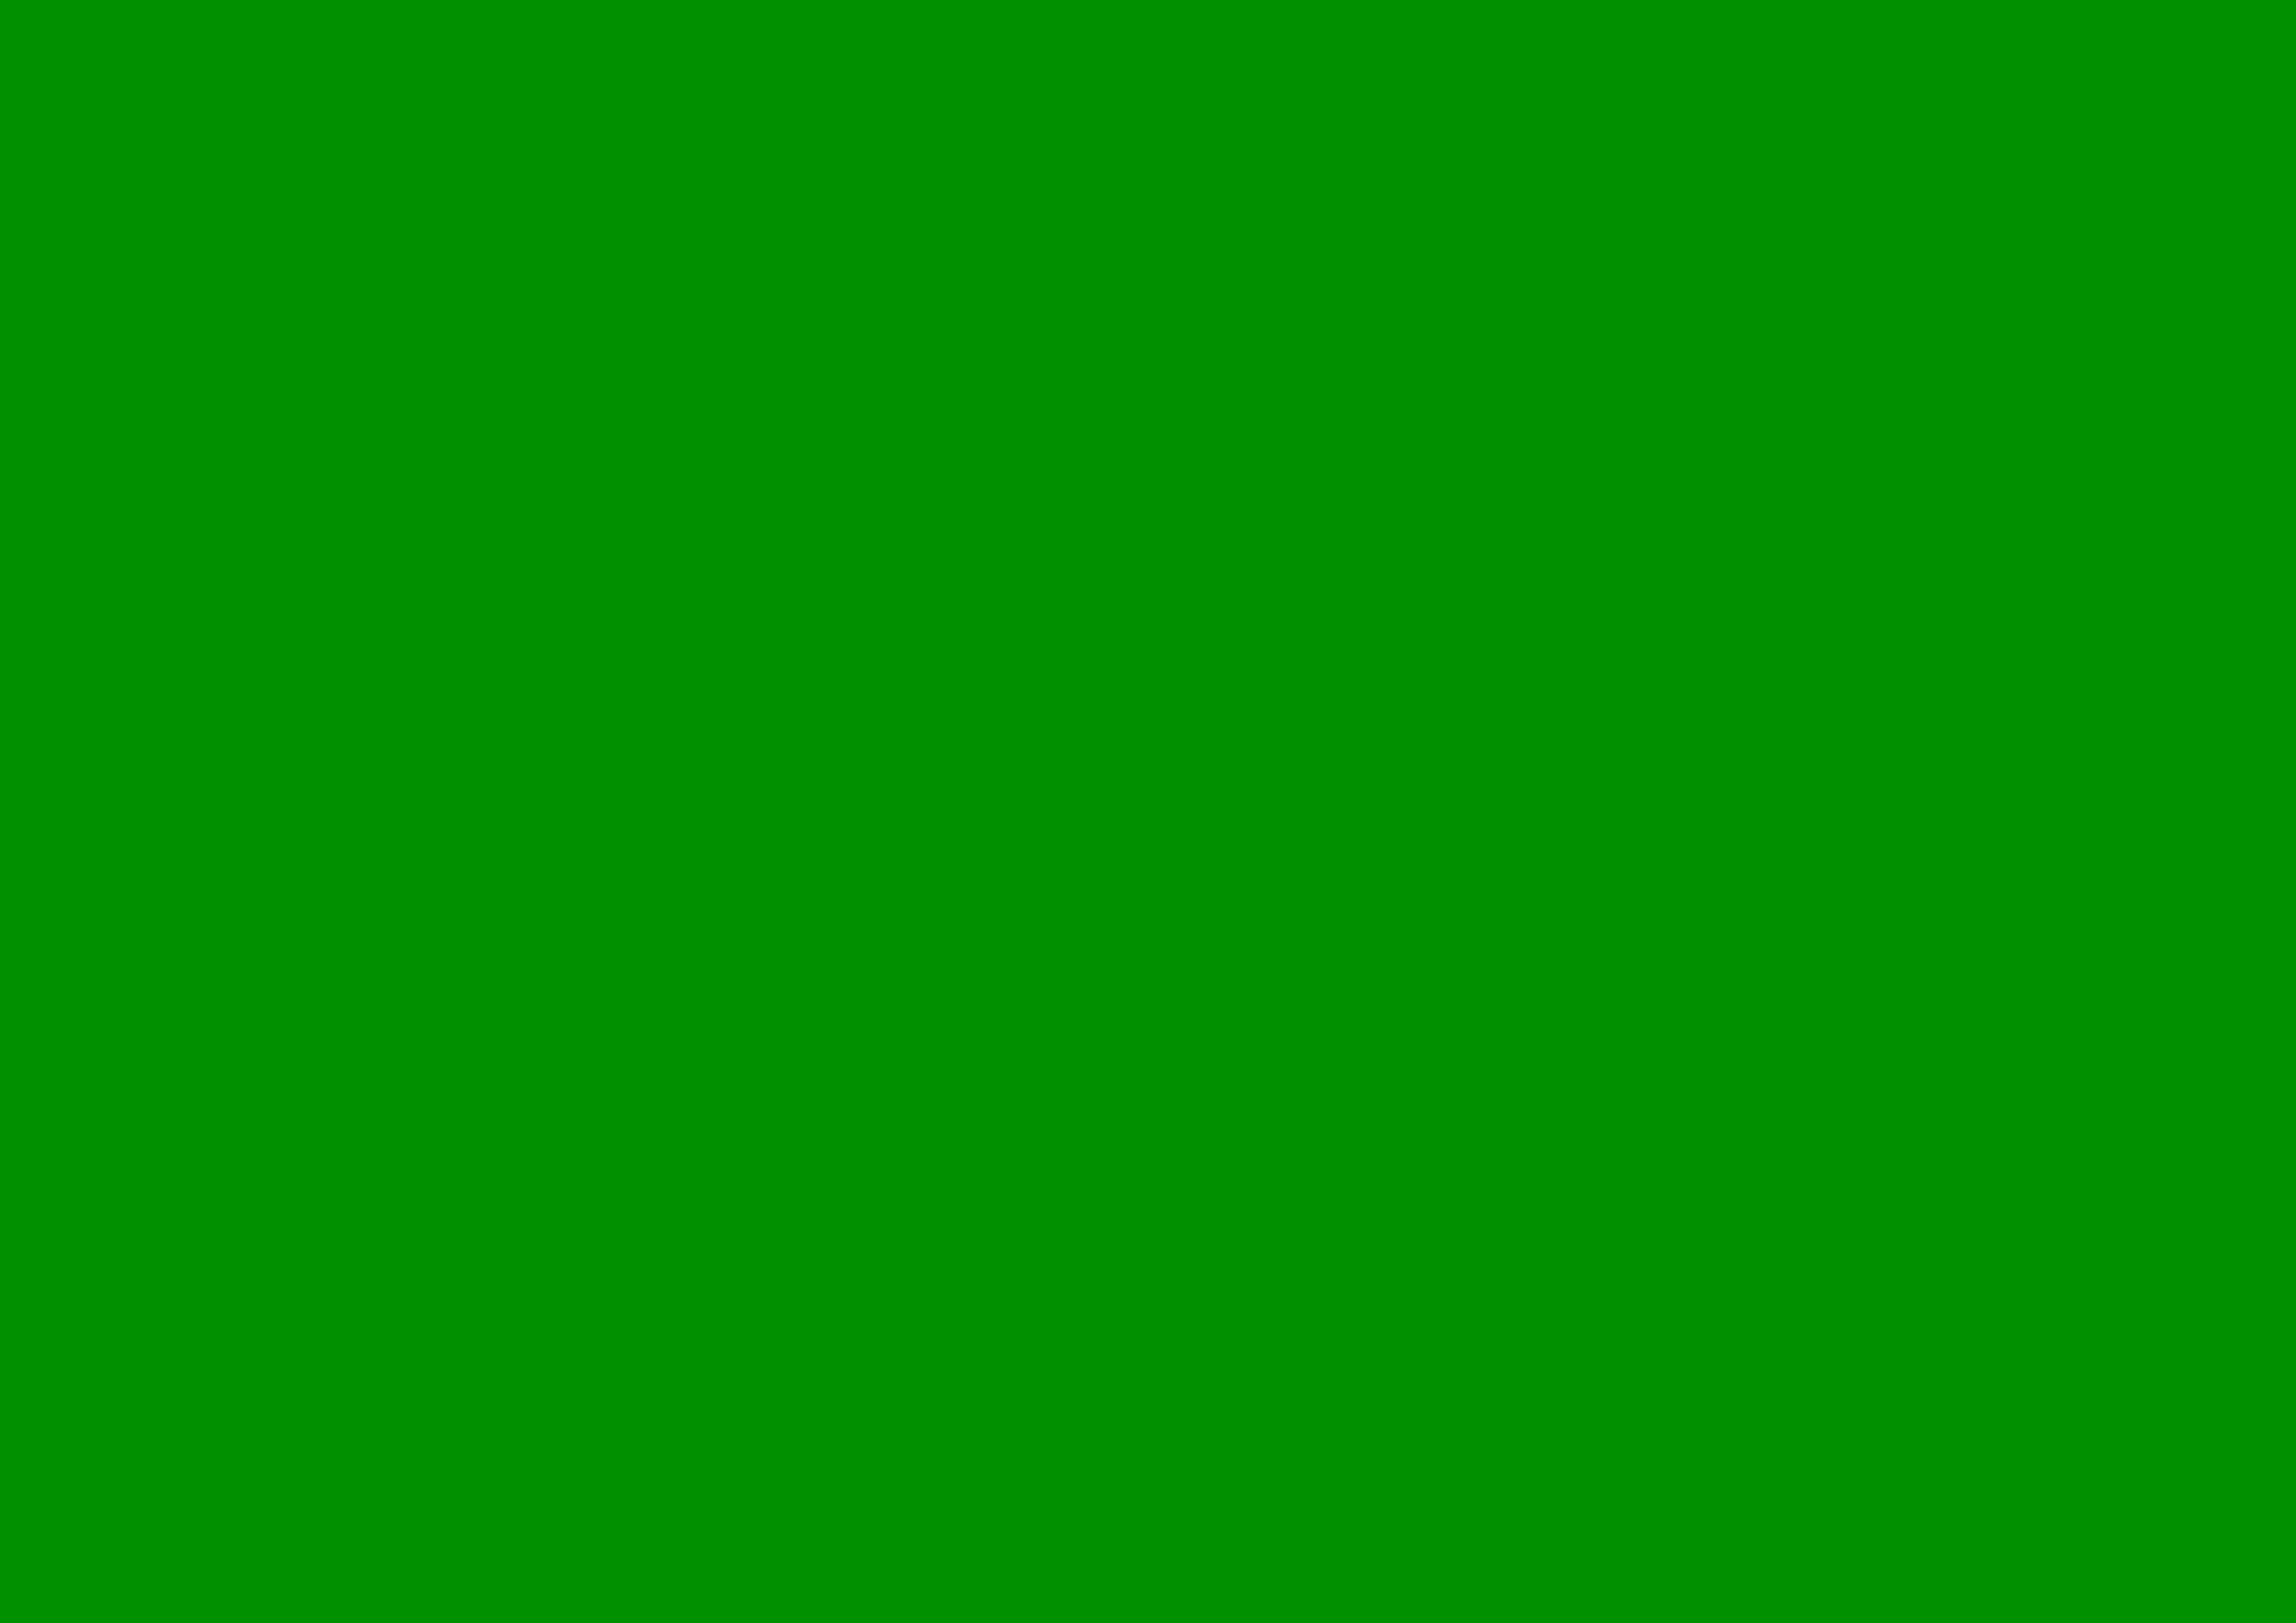 3508x2480 Islamic Green Solid Color Background